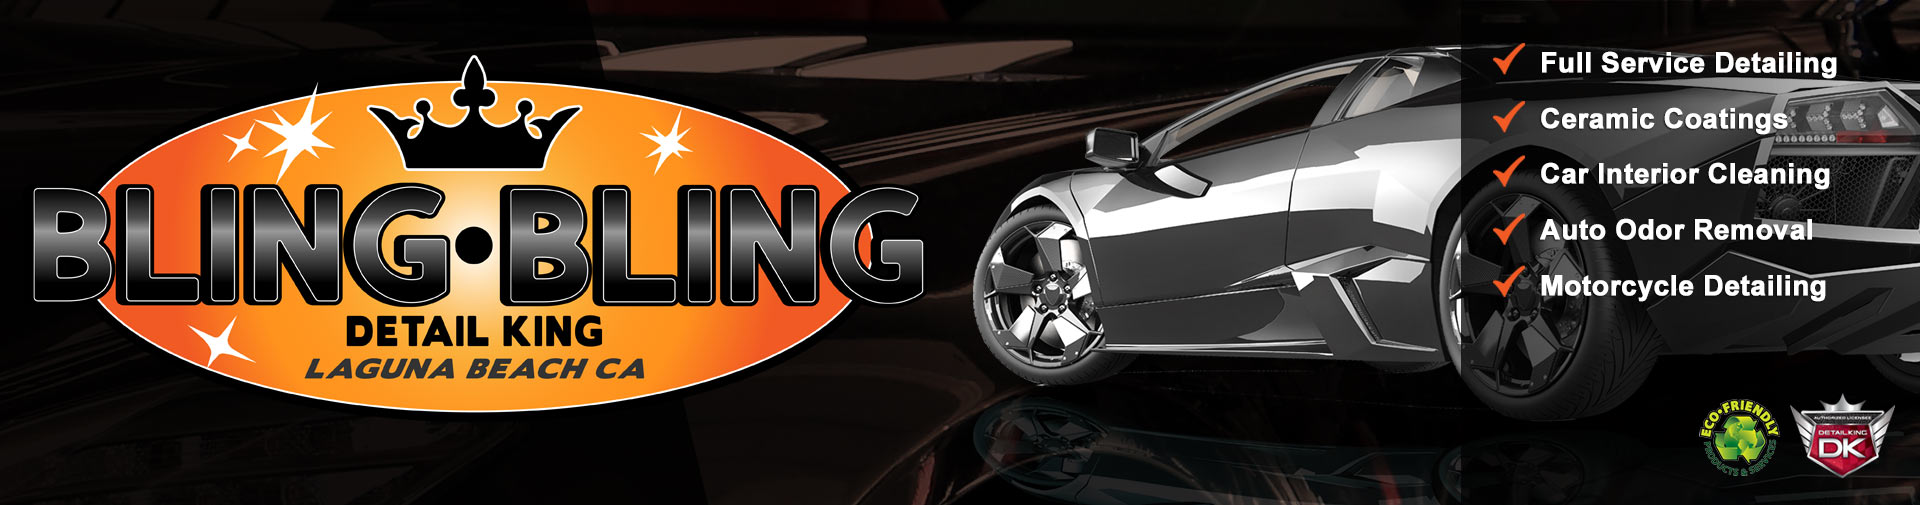 Bling Bling Detail King! Auto Detailing